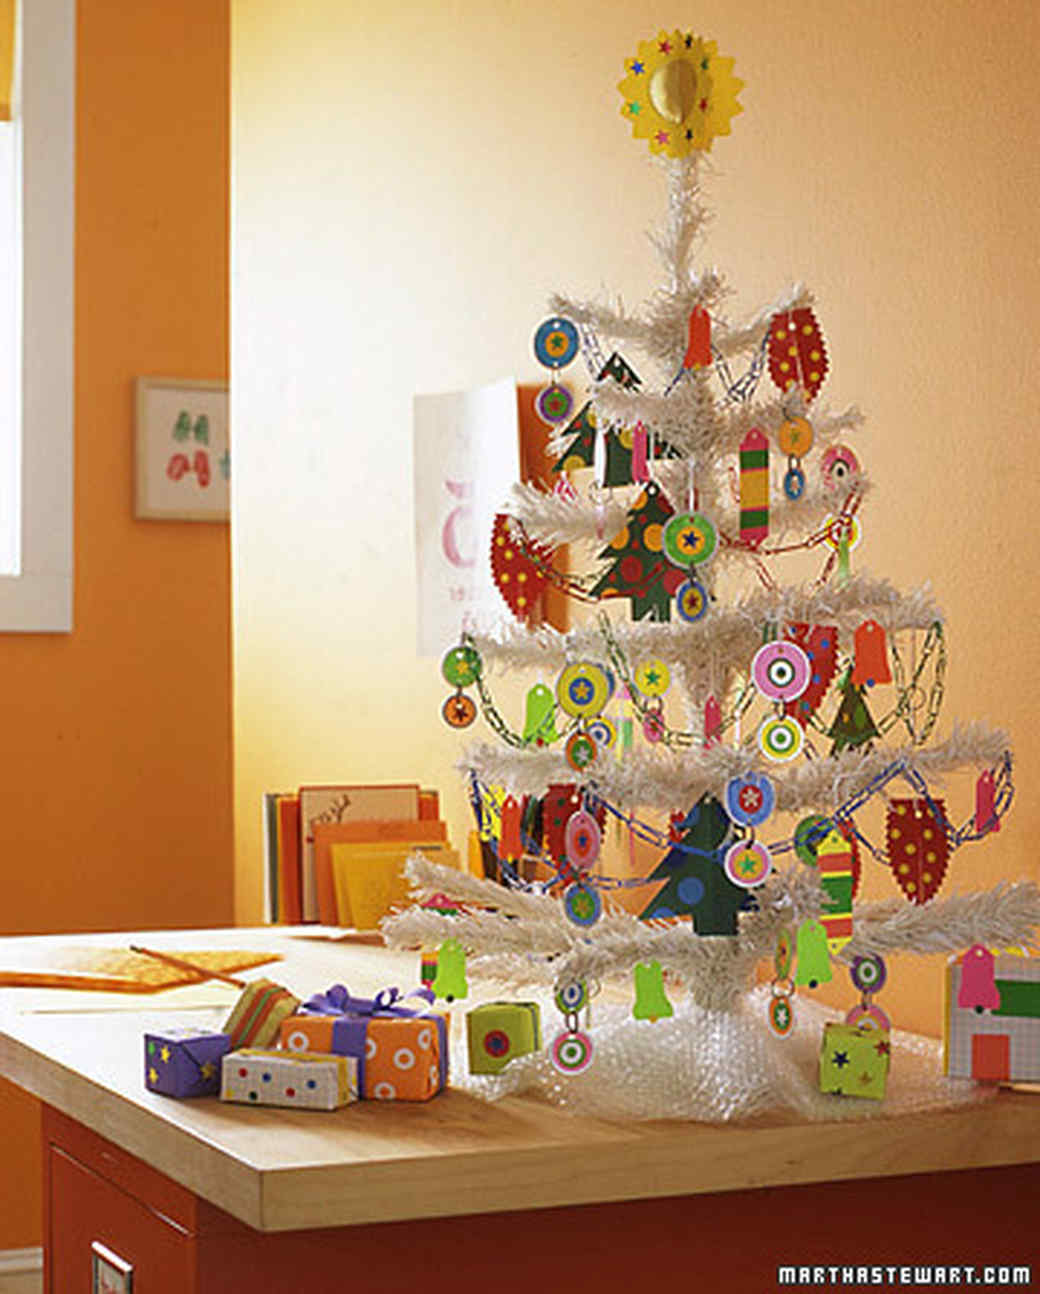 : ideas to decorate a christmas tree - www.pureclipart.com